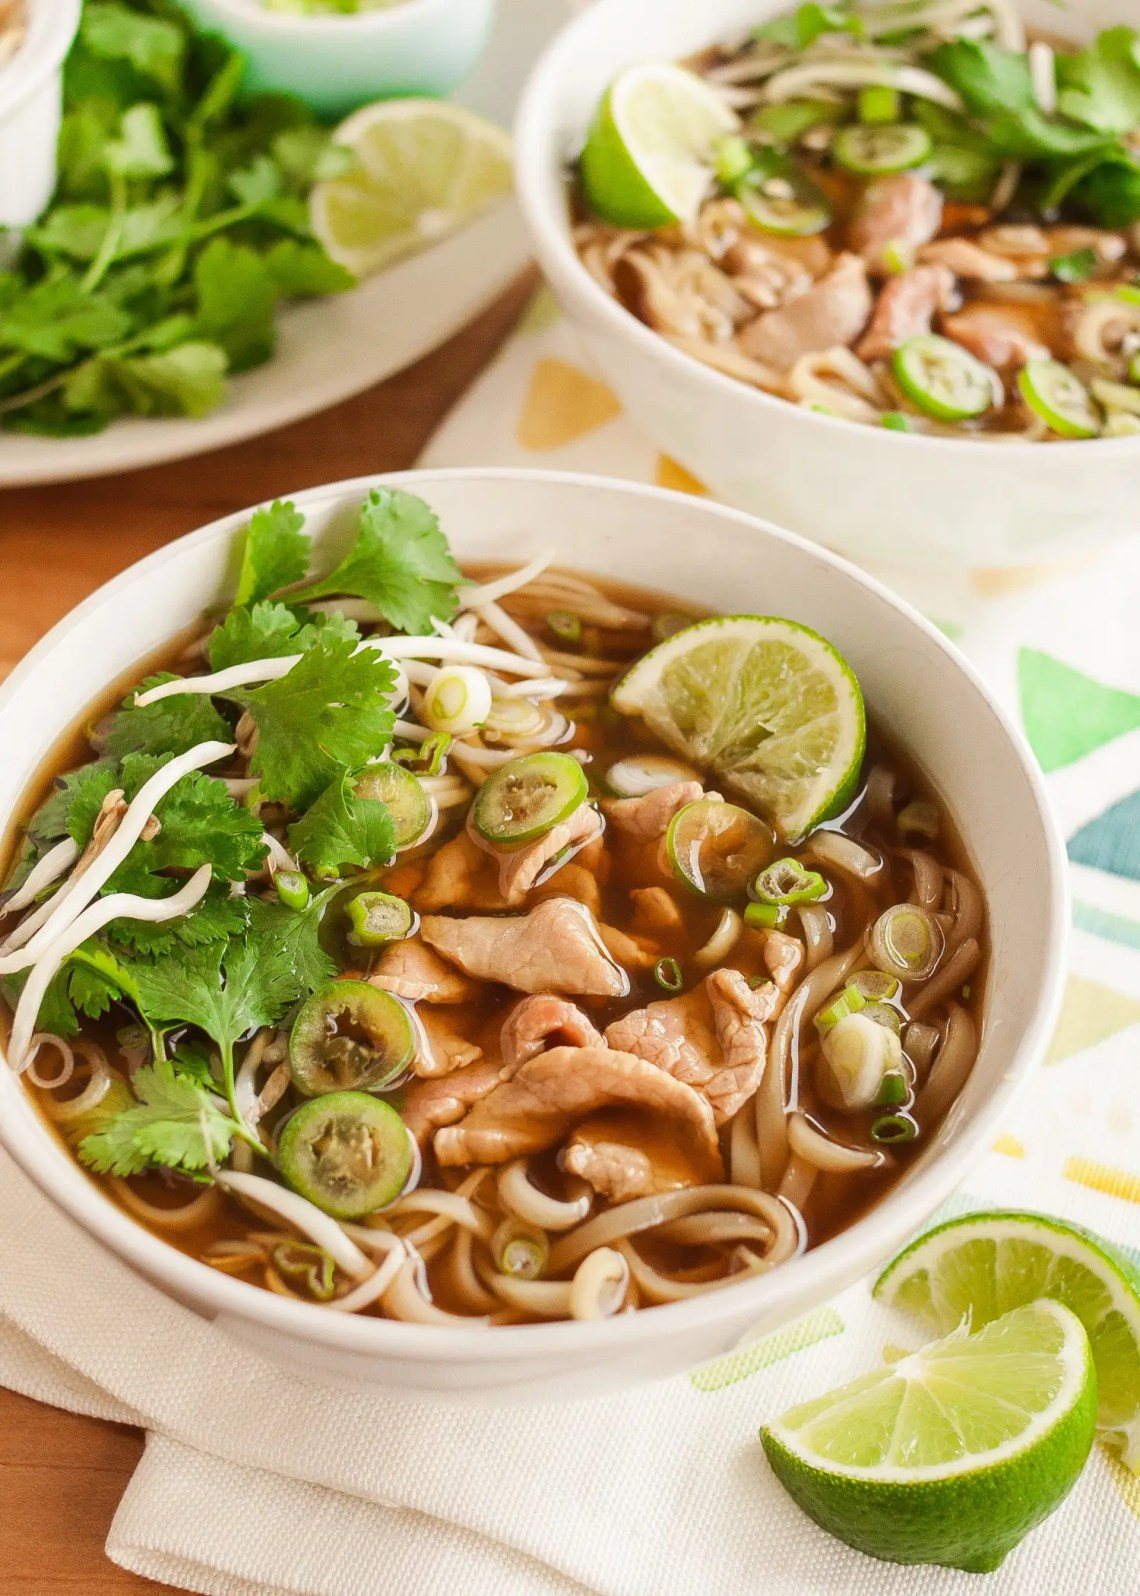 Pho Recipe - How To Make Vietnamese Beef Noodle Pho | Kitchn